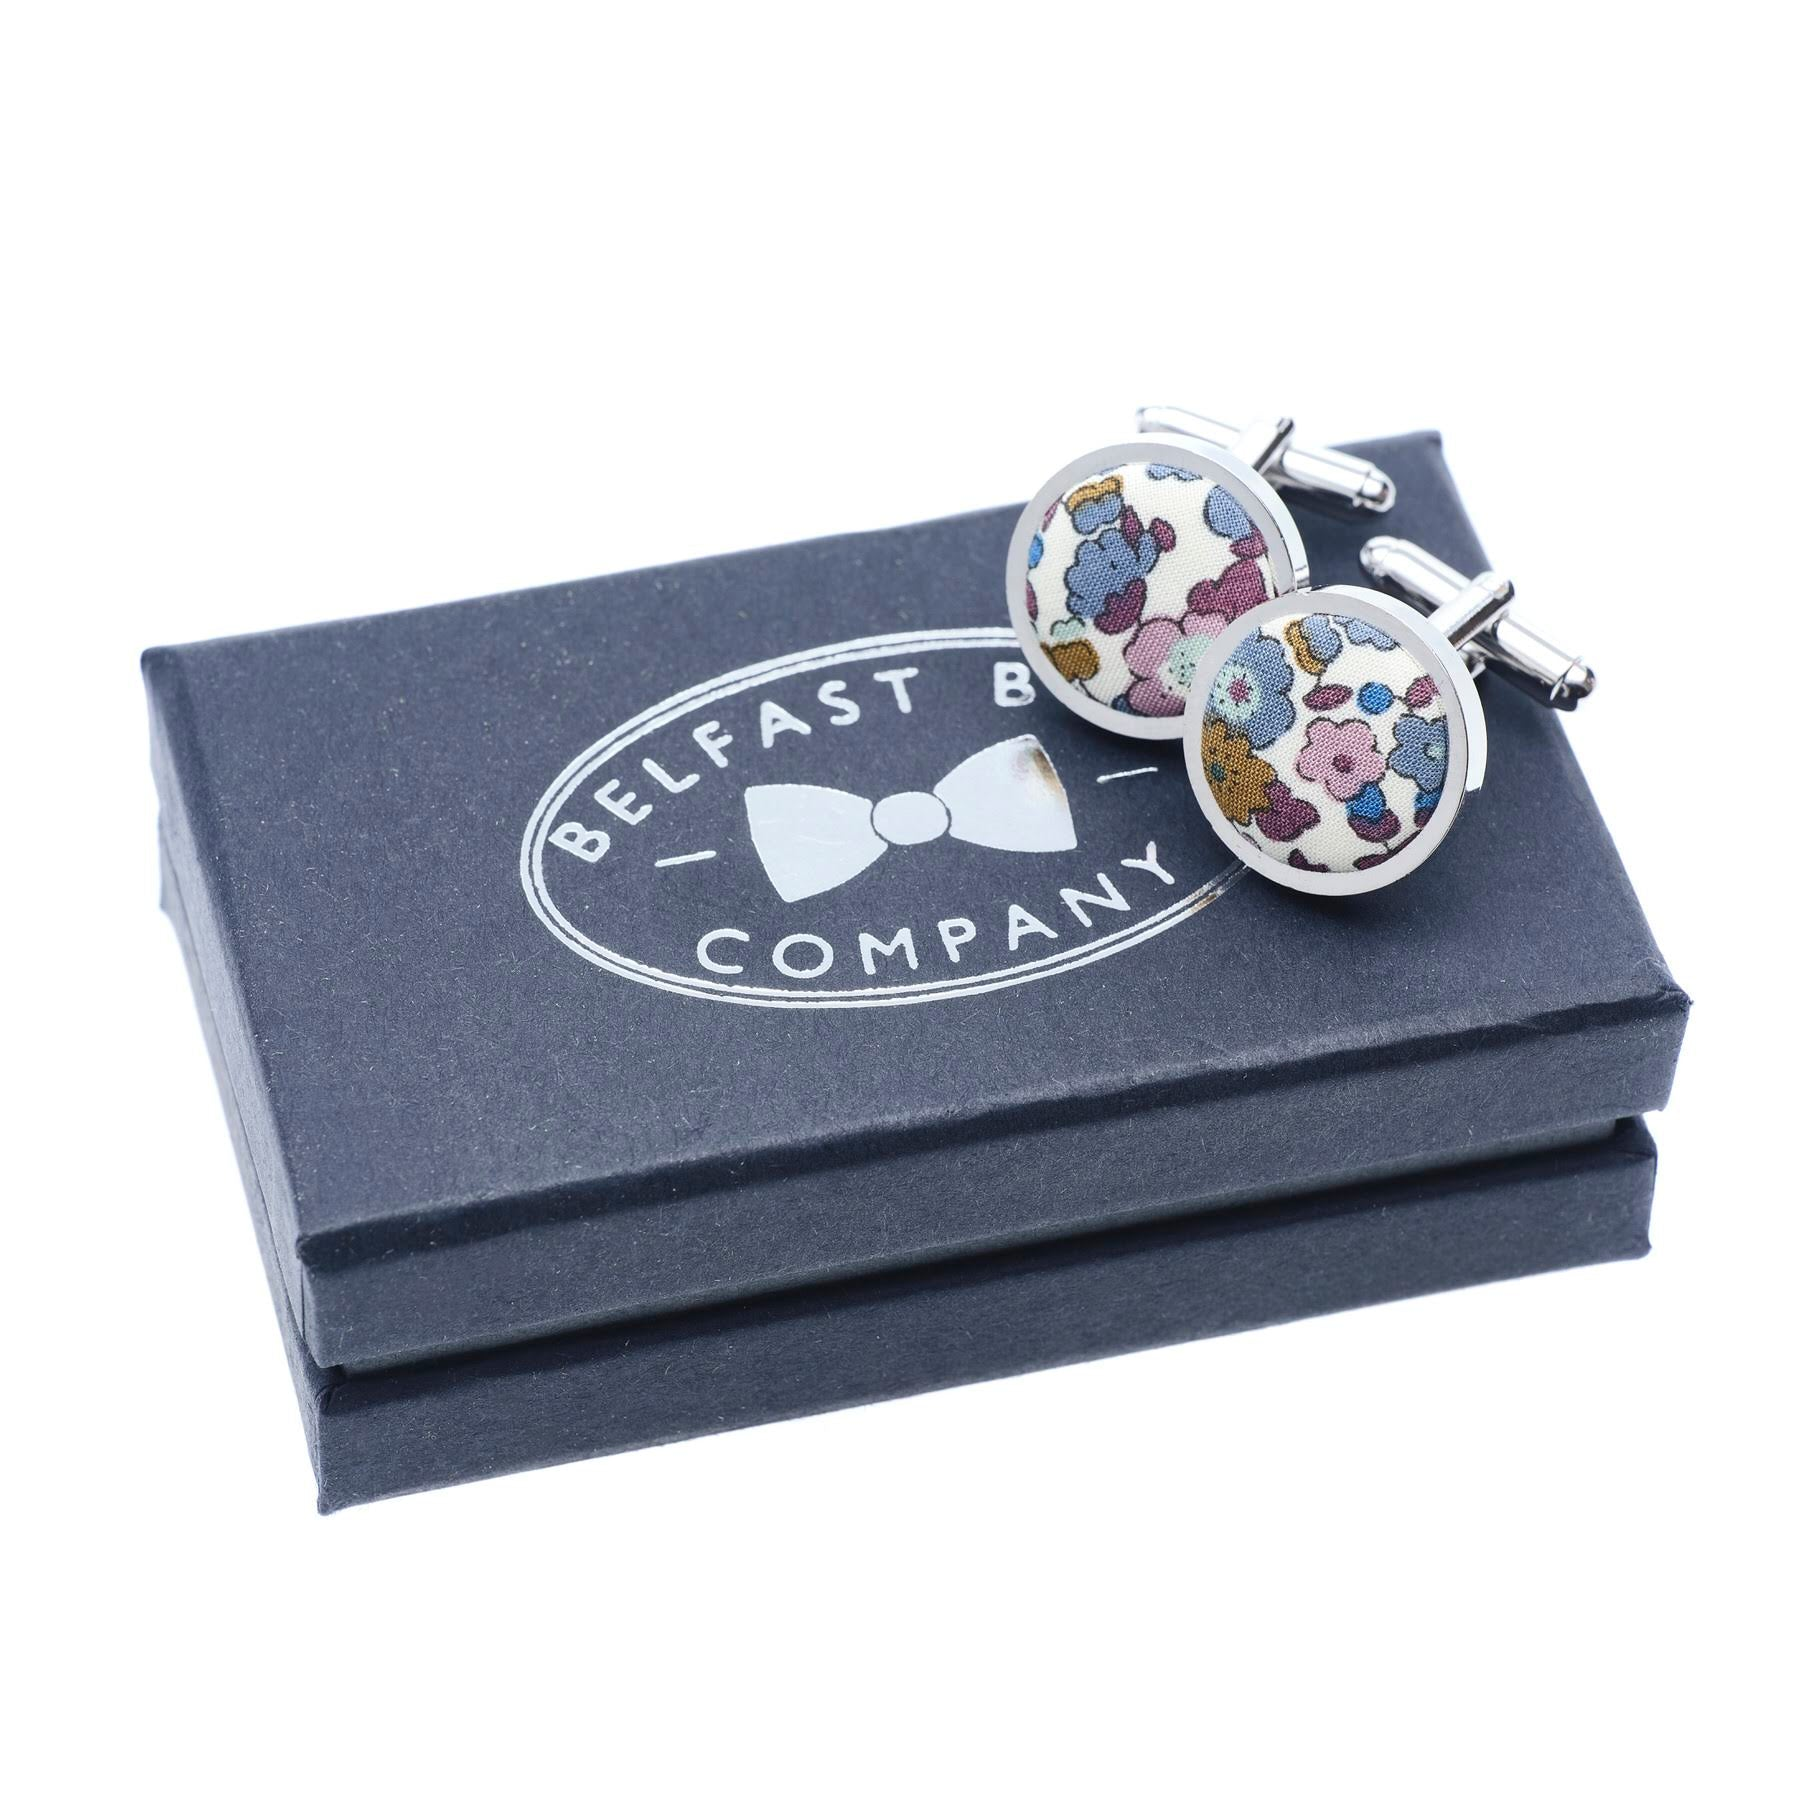 Liberty of London Cufflinks in Fig Floral by the Belfast Bow Company Gift Boxed